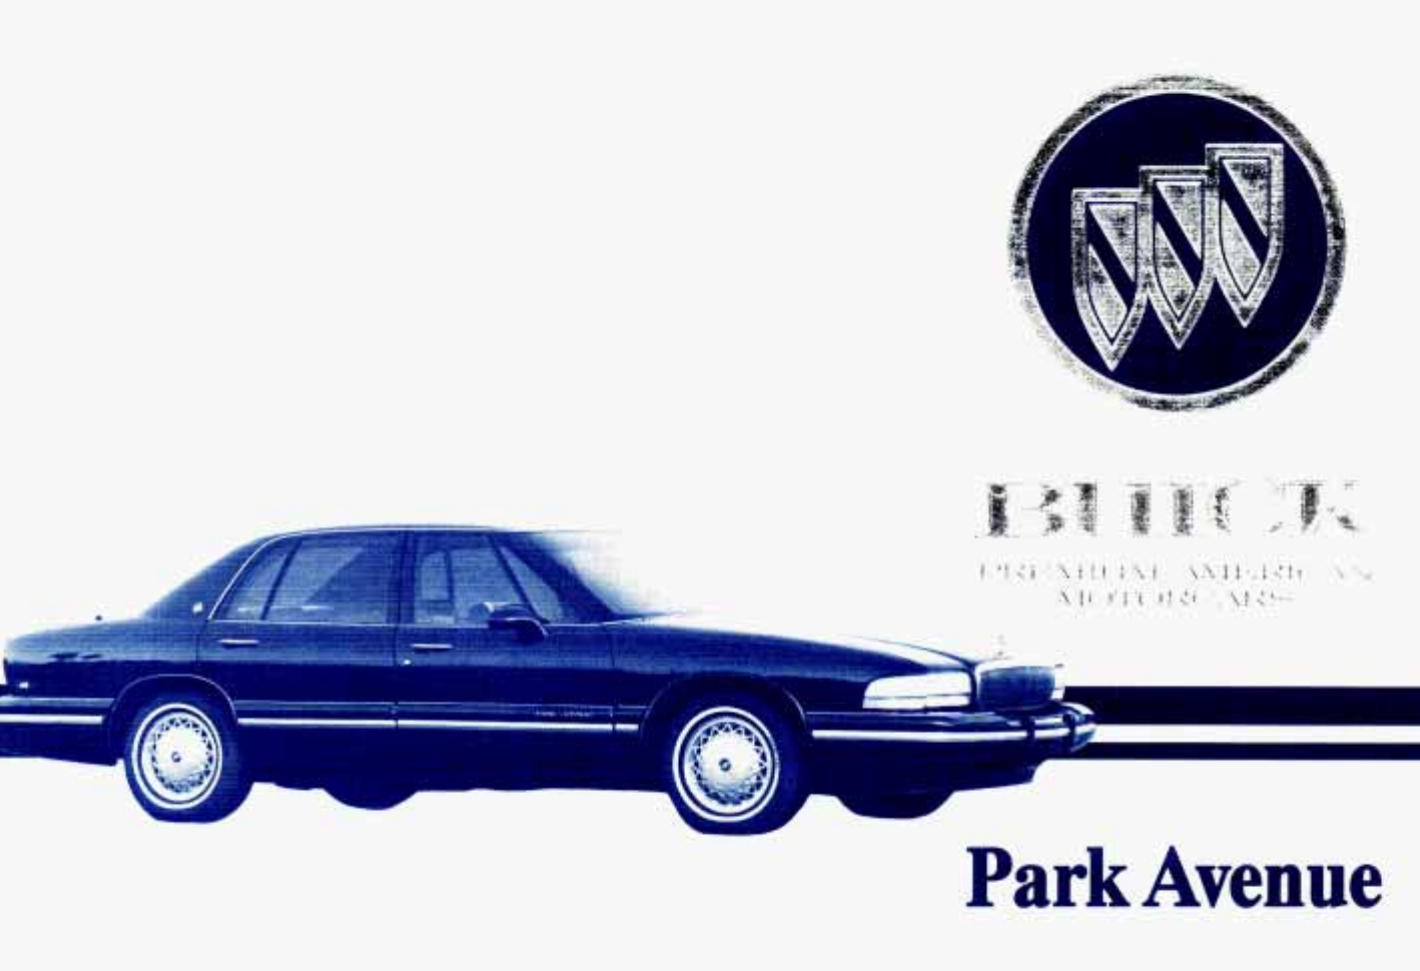 See our other Buick Park Avenue Manuals: